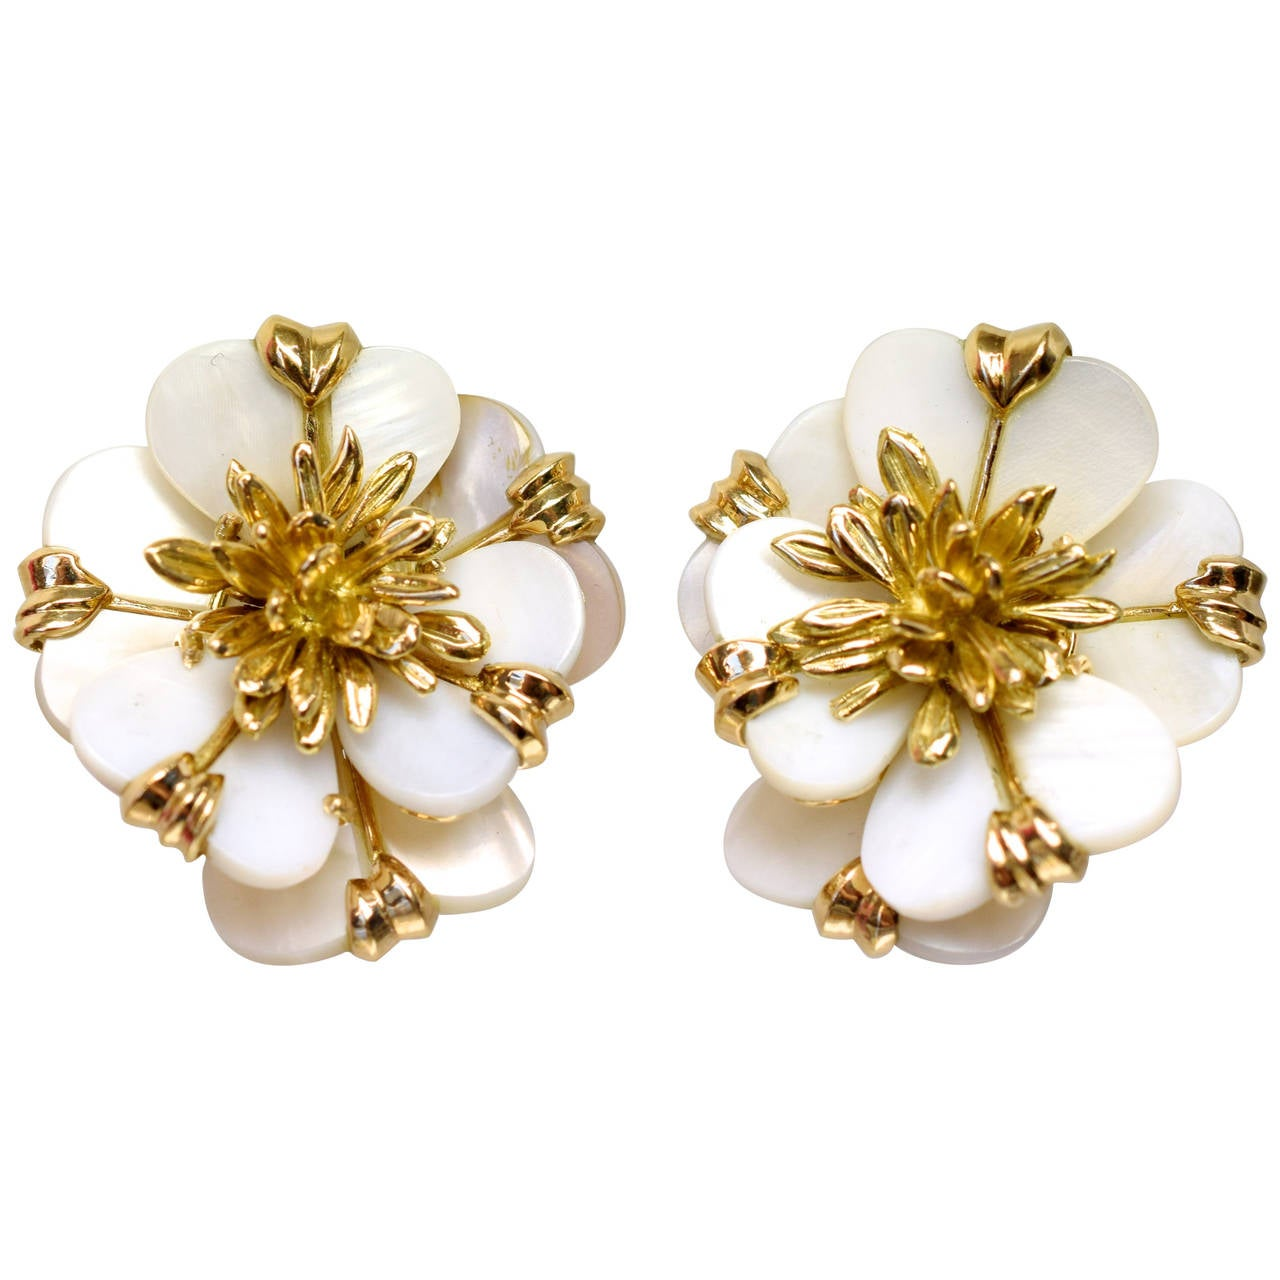 "Cartier ""Edelweiss Flowers"" Paris Earrings"